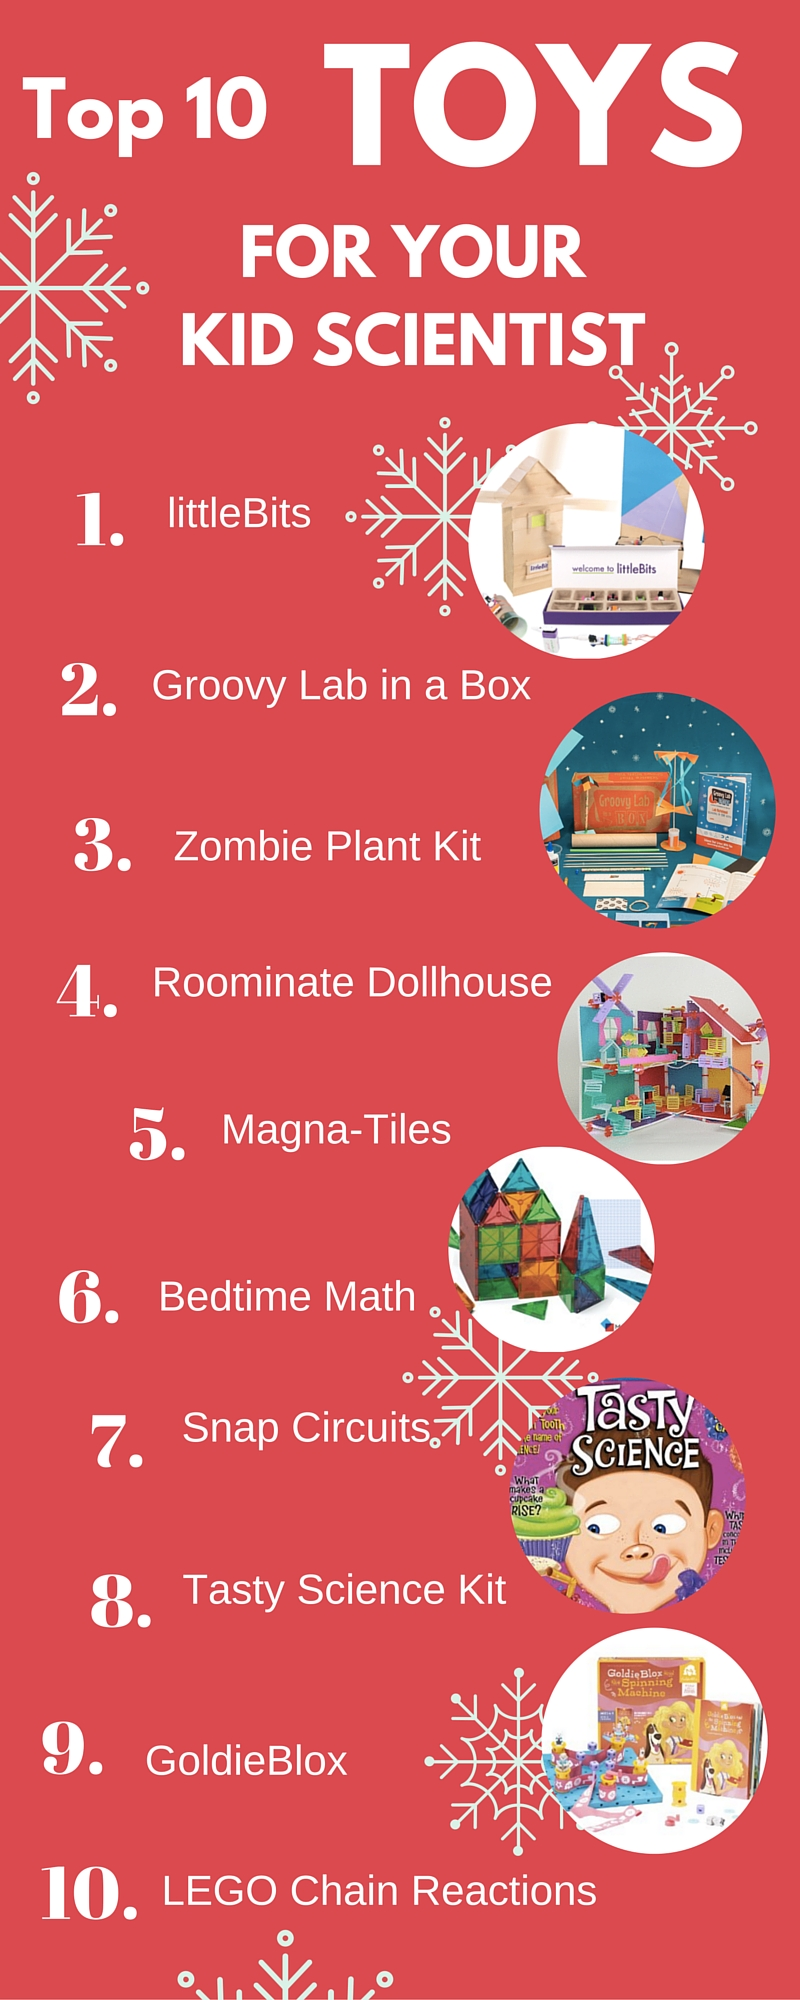 Gift Guide Top 10 Toys For Your Kid Scientist Asty